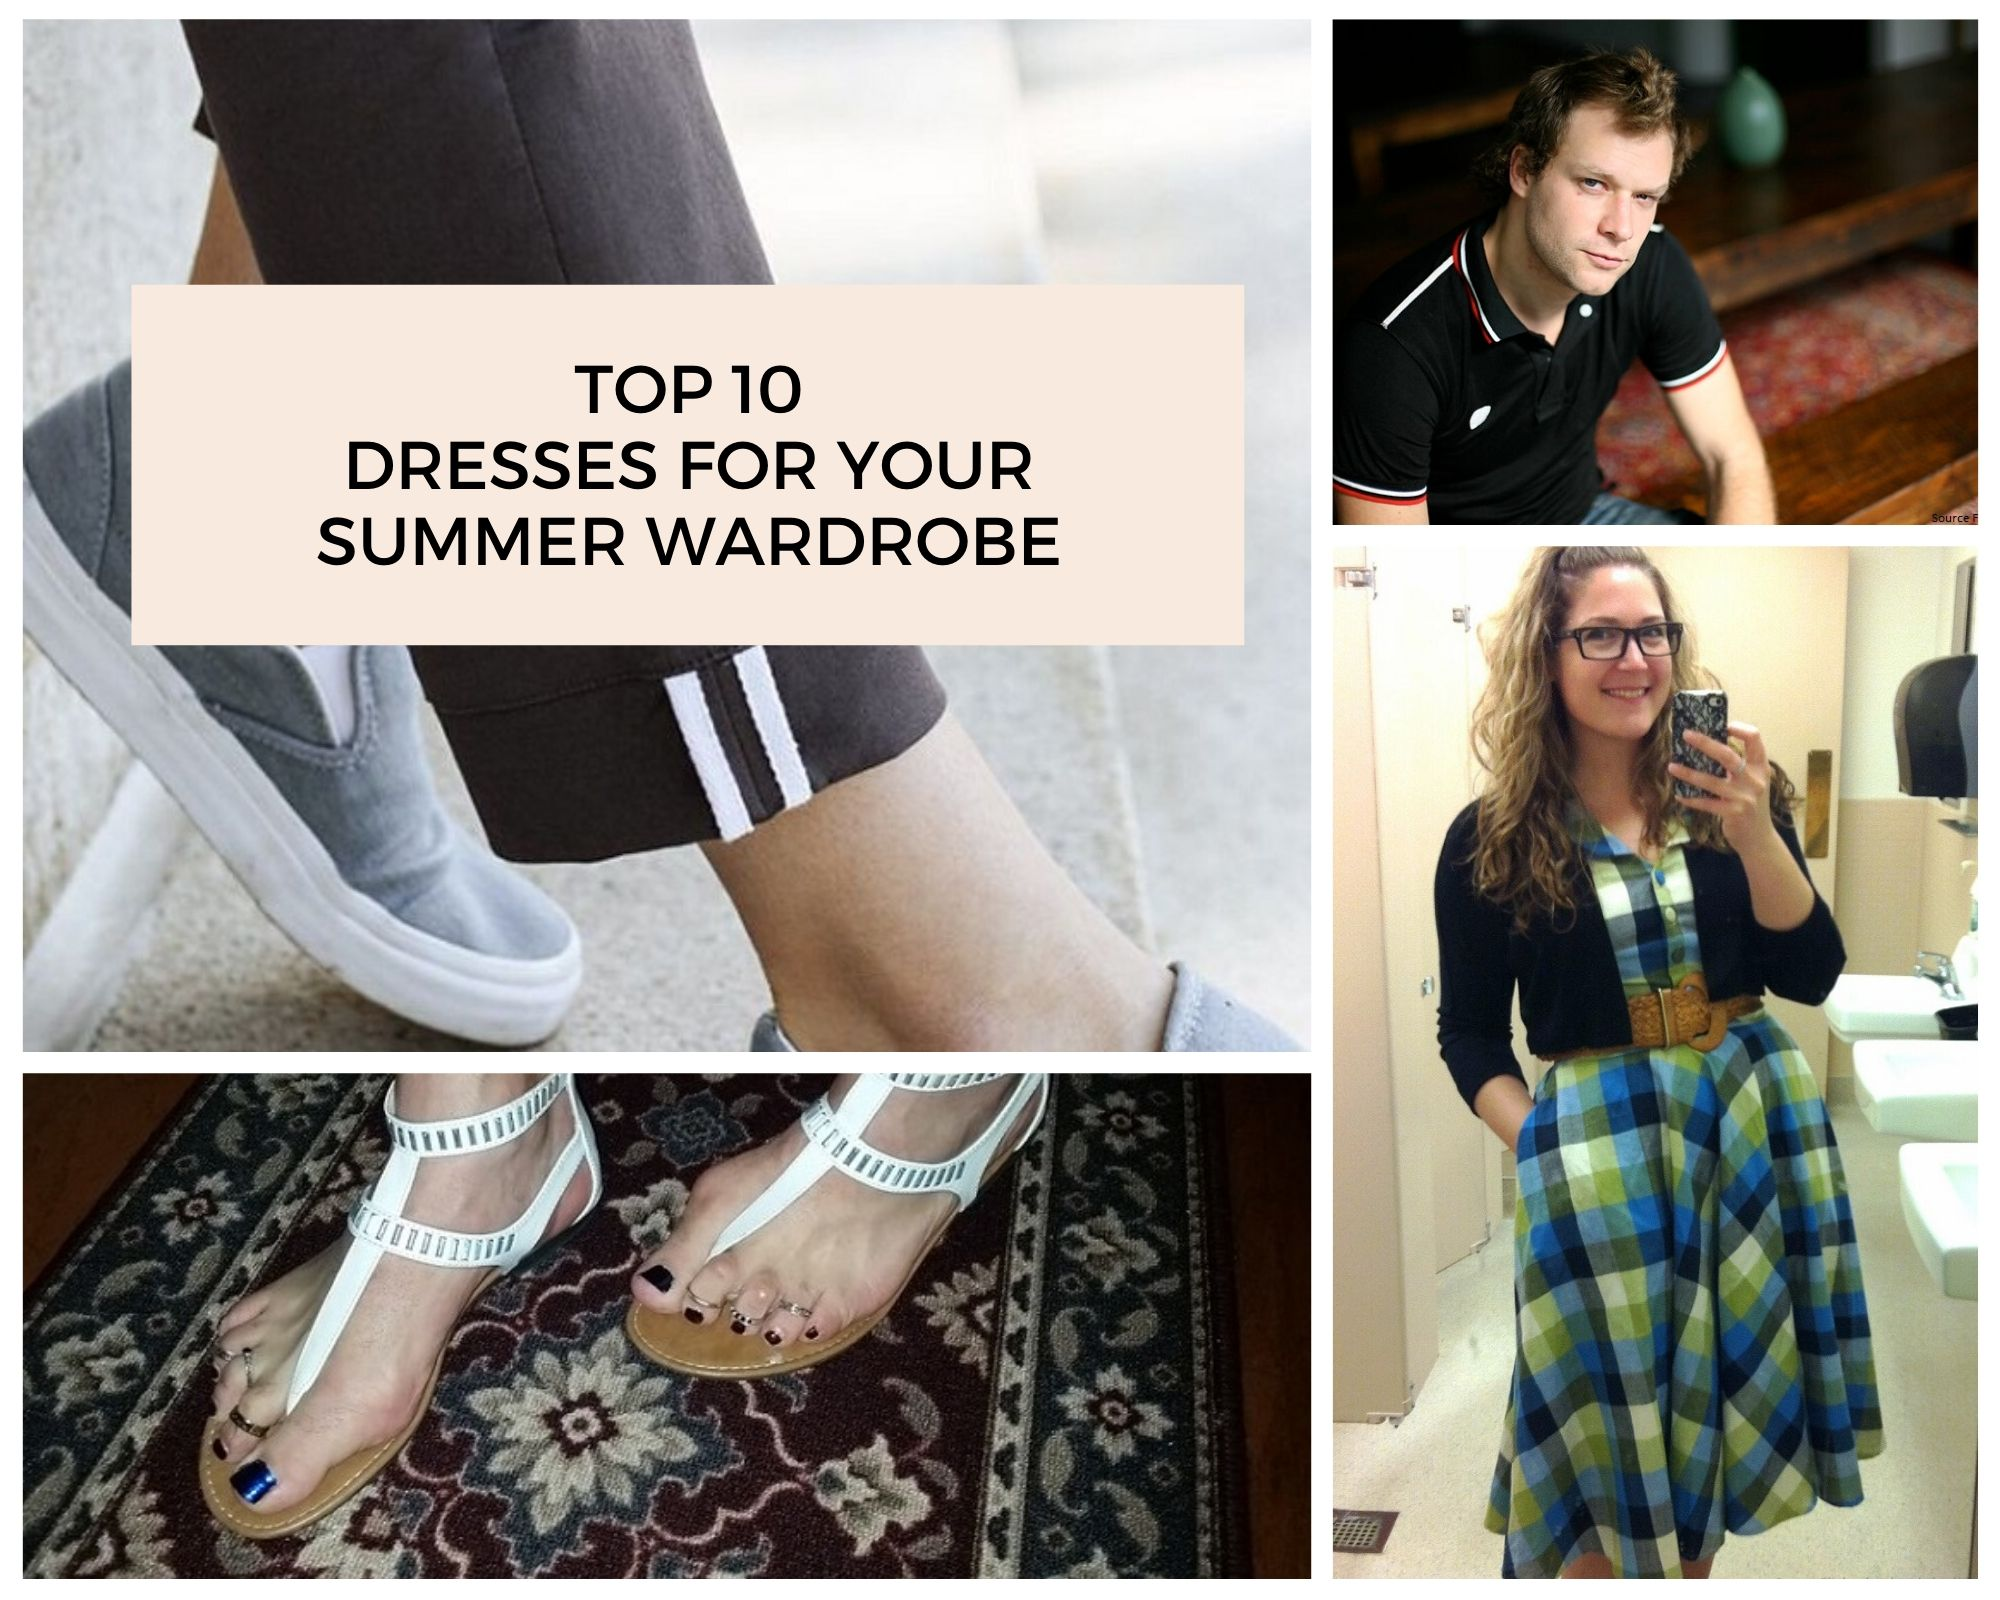 Top 10 Dresses for your Summer Wardrobe